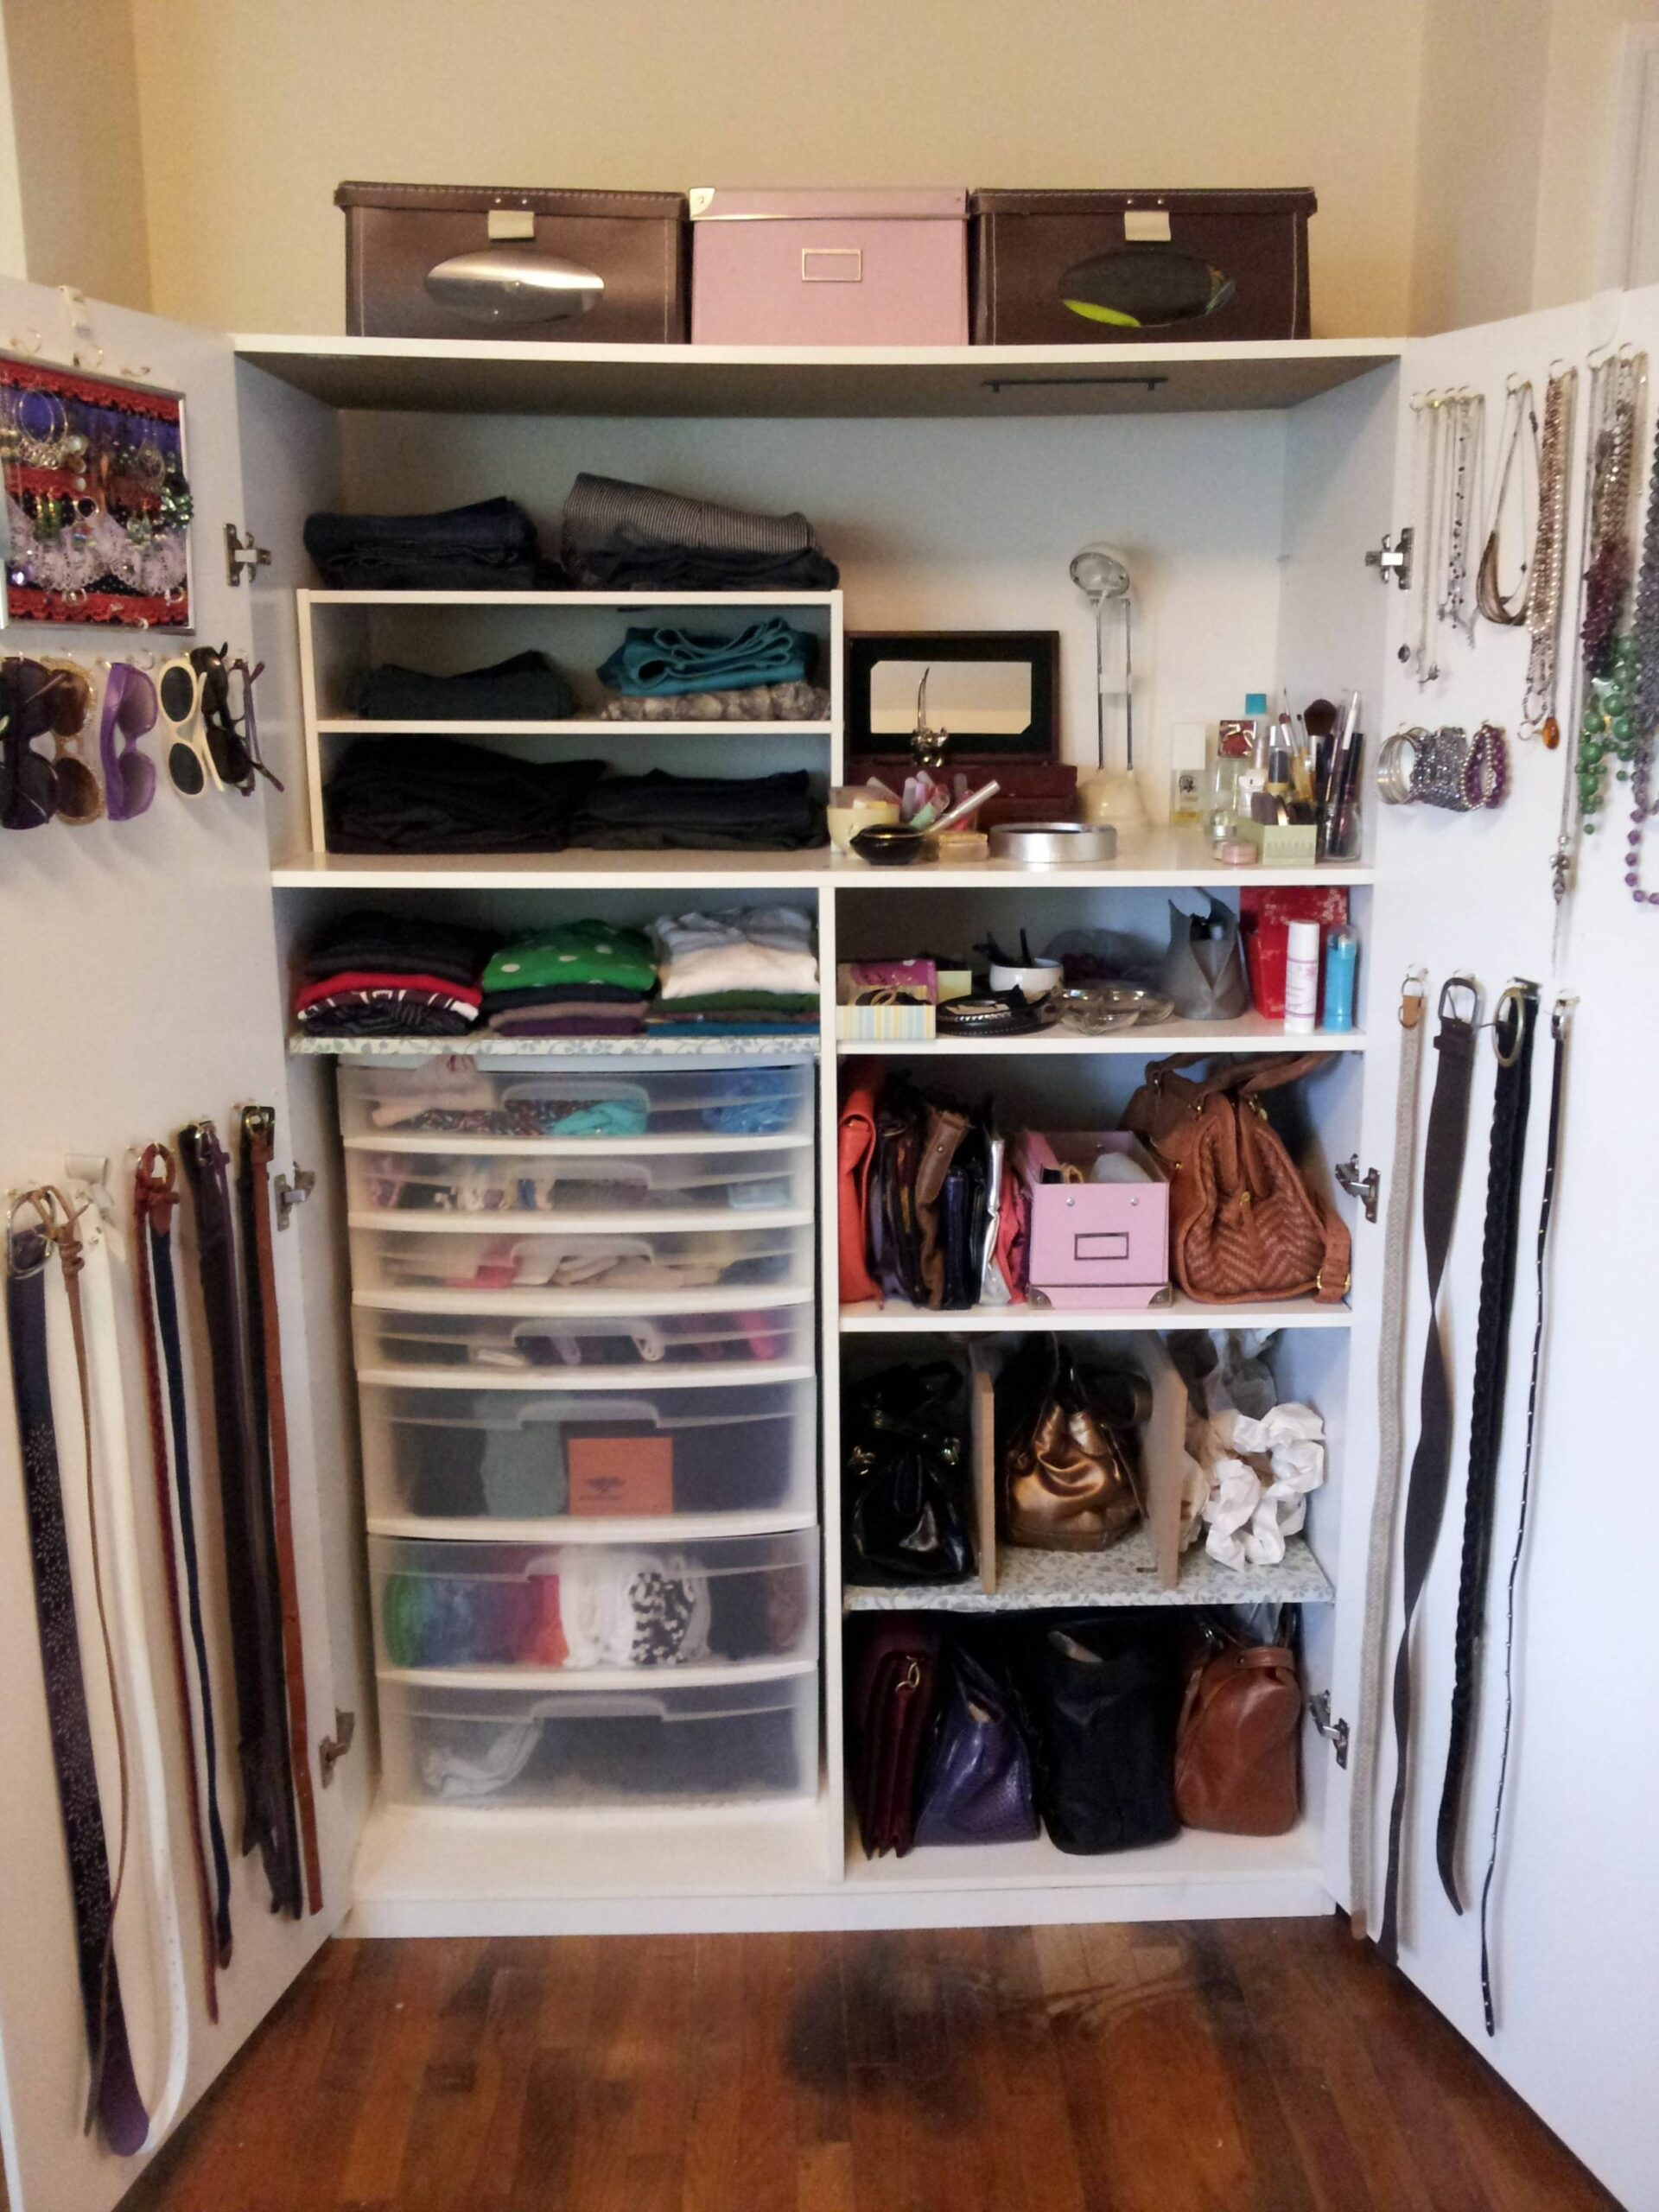 How to Organize A Lot of Clothing in Very Little Closet Space